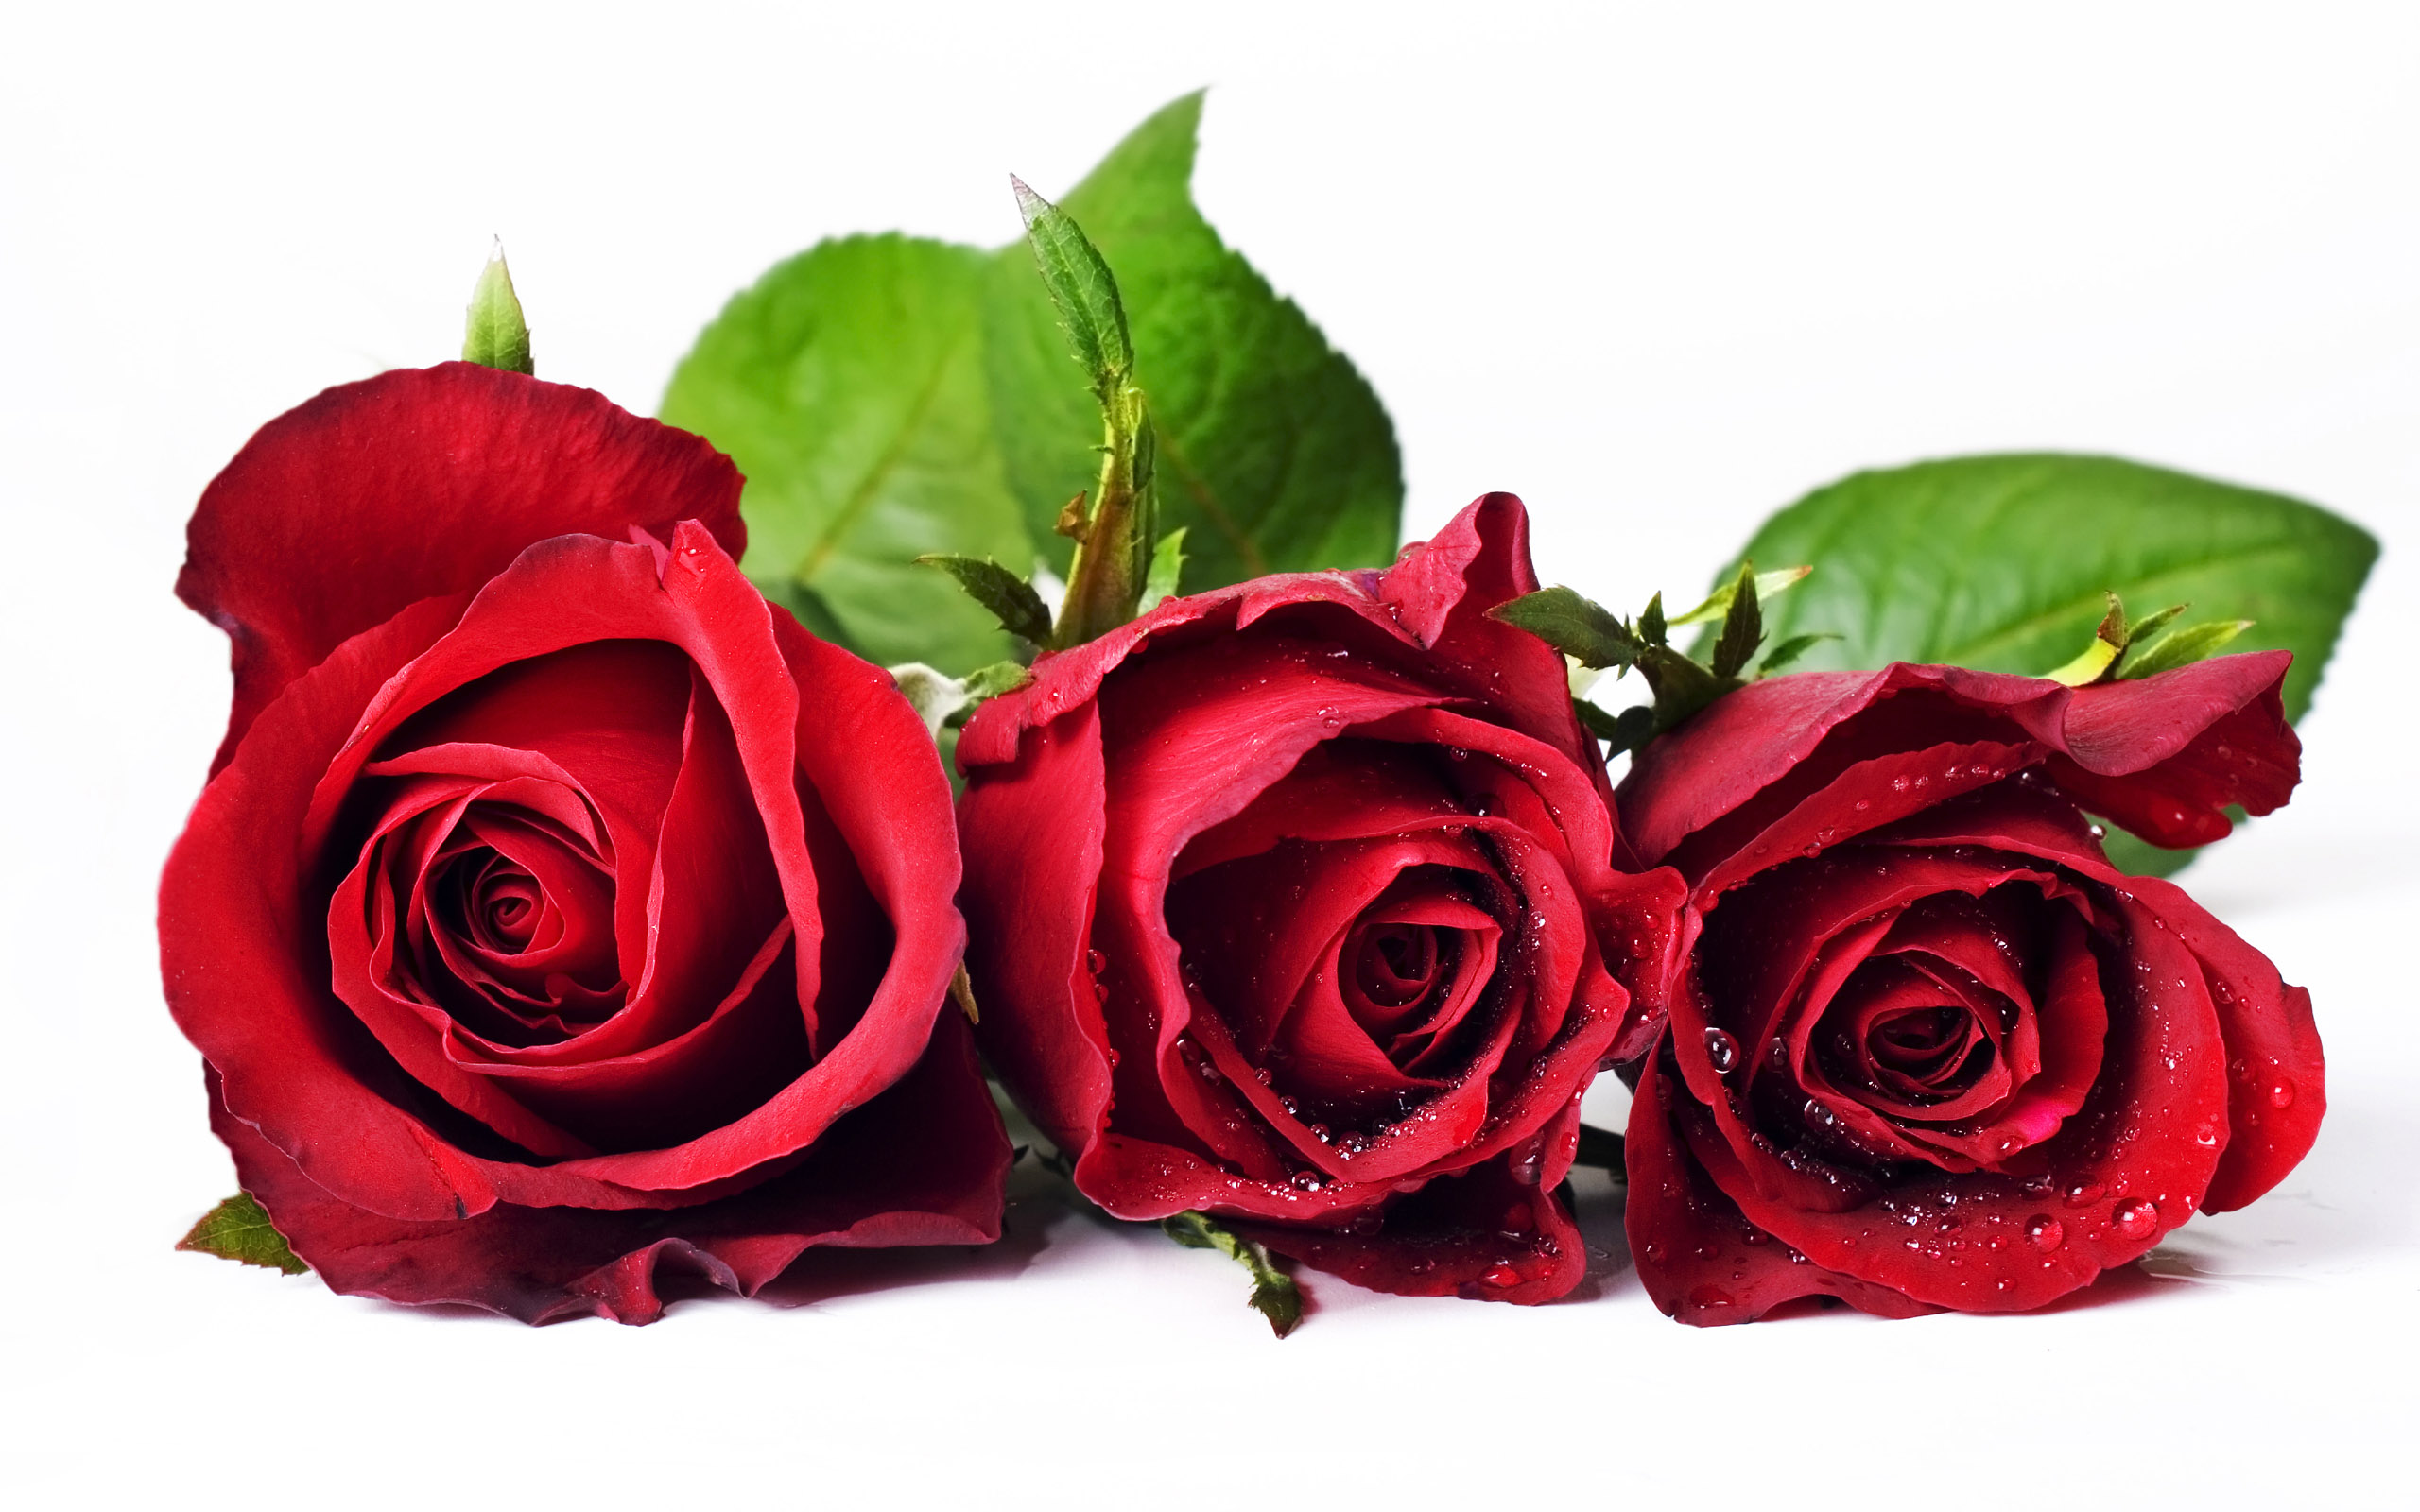 Free download flower pictures image free download Hd Flower Pictures Free Photos For Free Download image free download